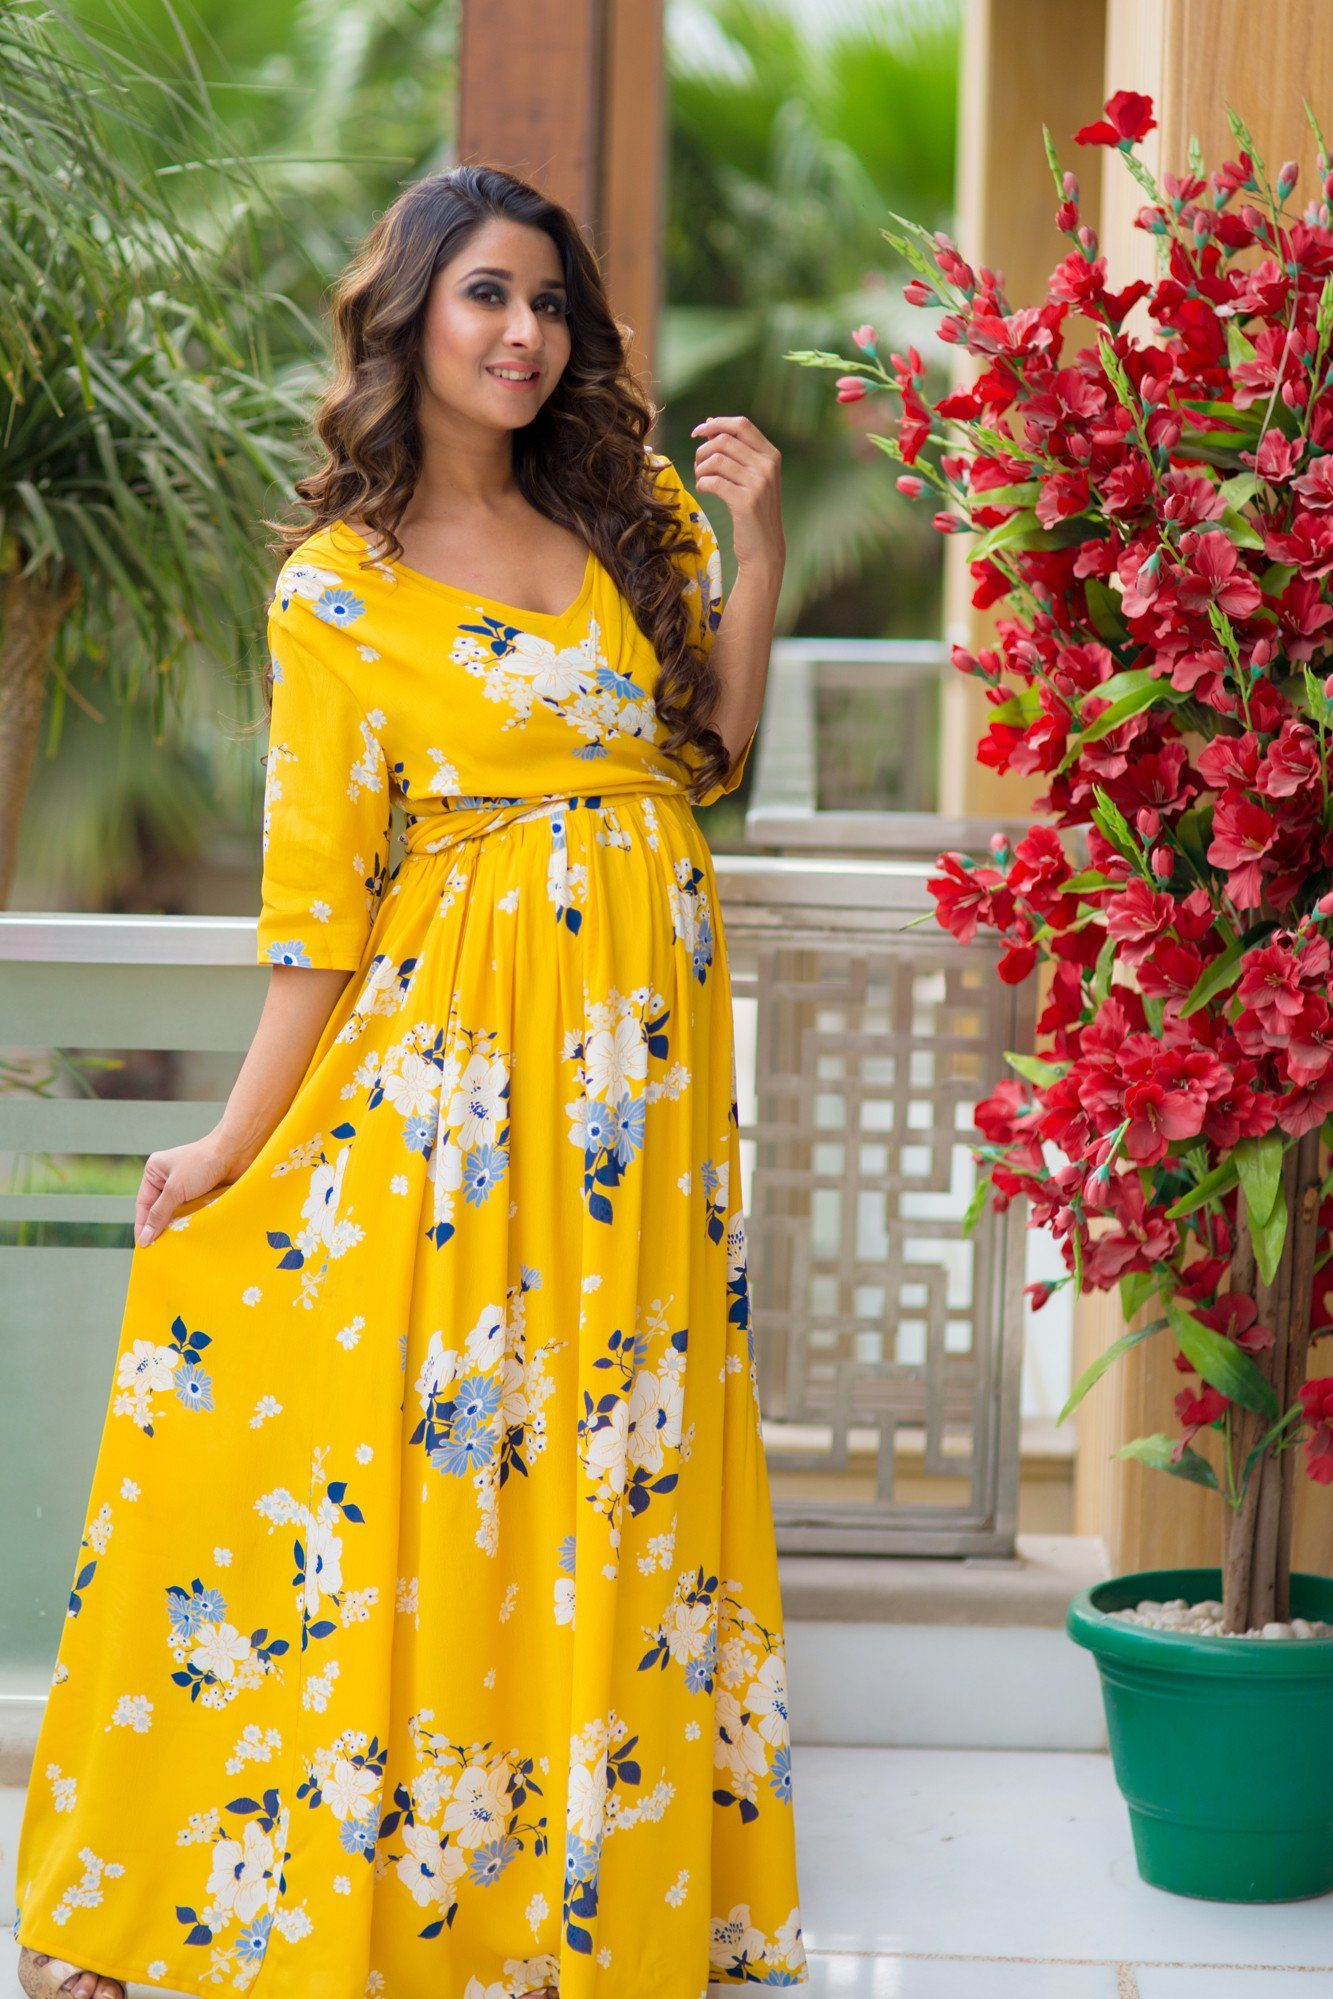 Buy maternity clothes pregnancy wear online india hello yellow floral maternity nursing crepe wrap dress ombrellifo Choice Image